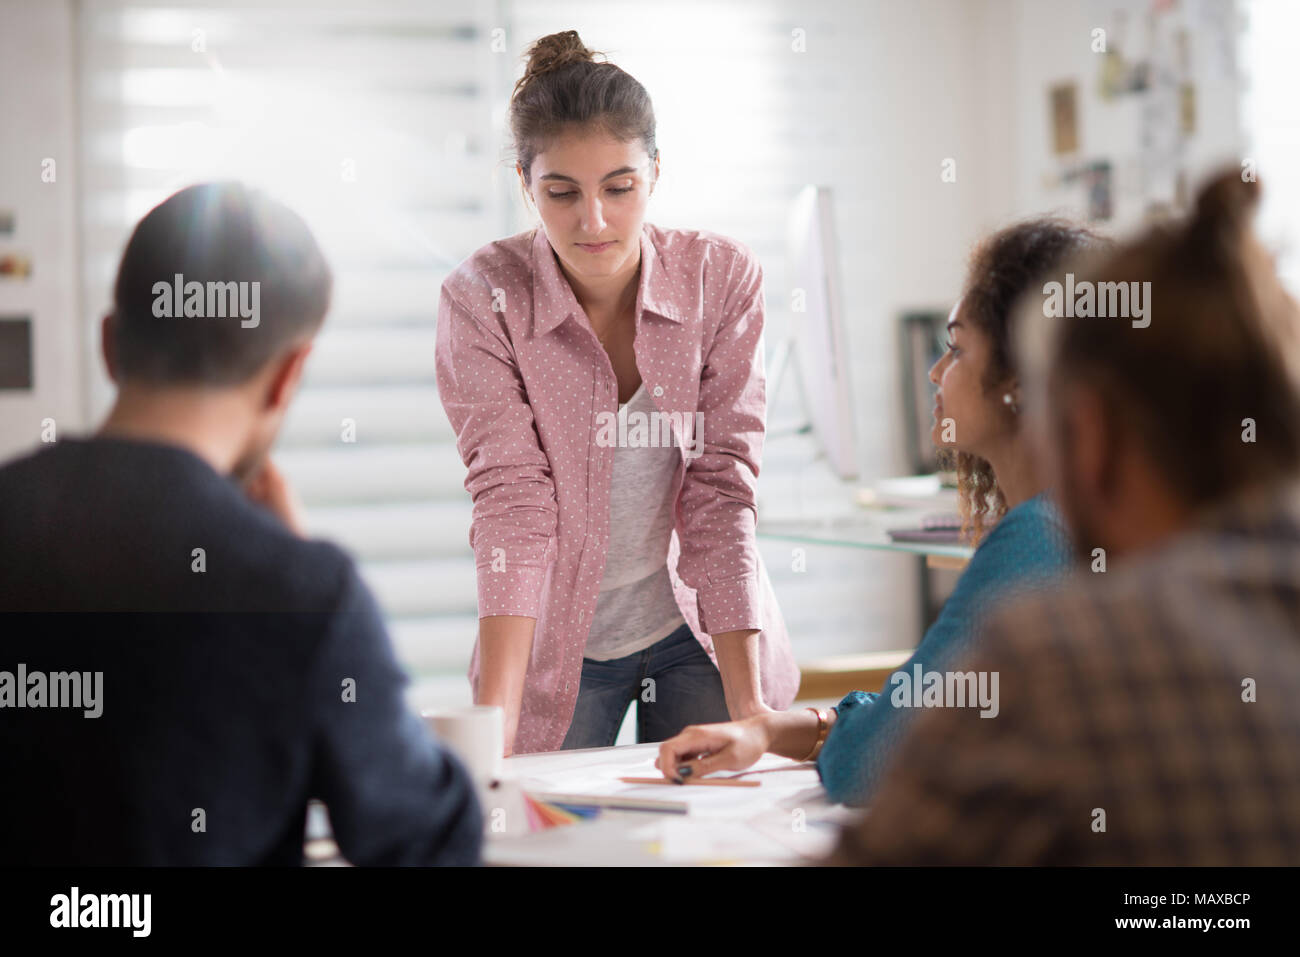 meeting office. A young woman presents her project - Stock Image